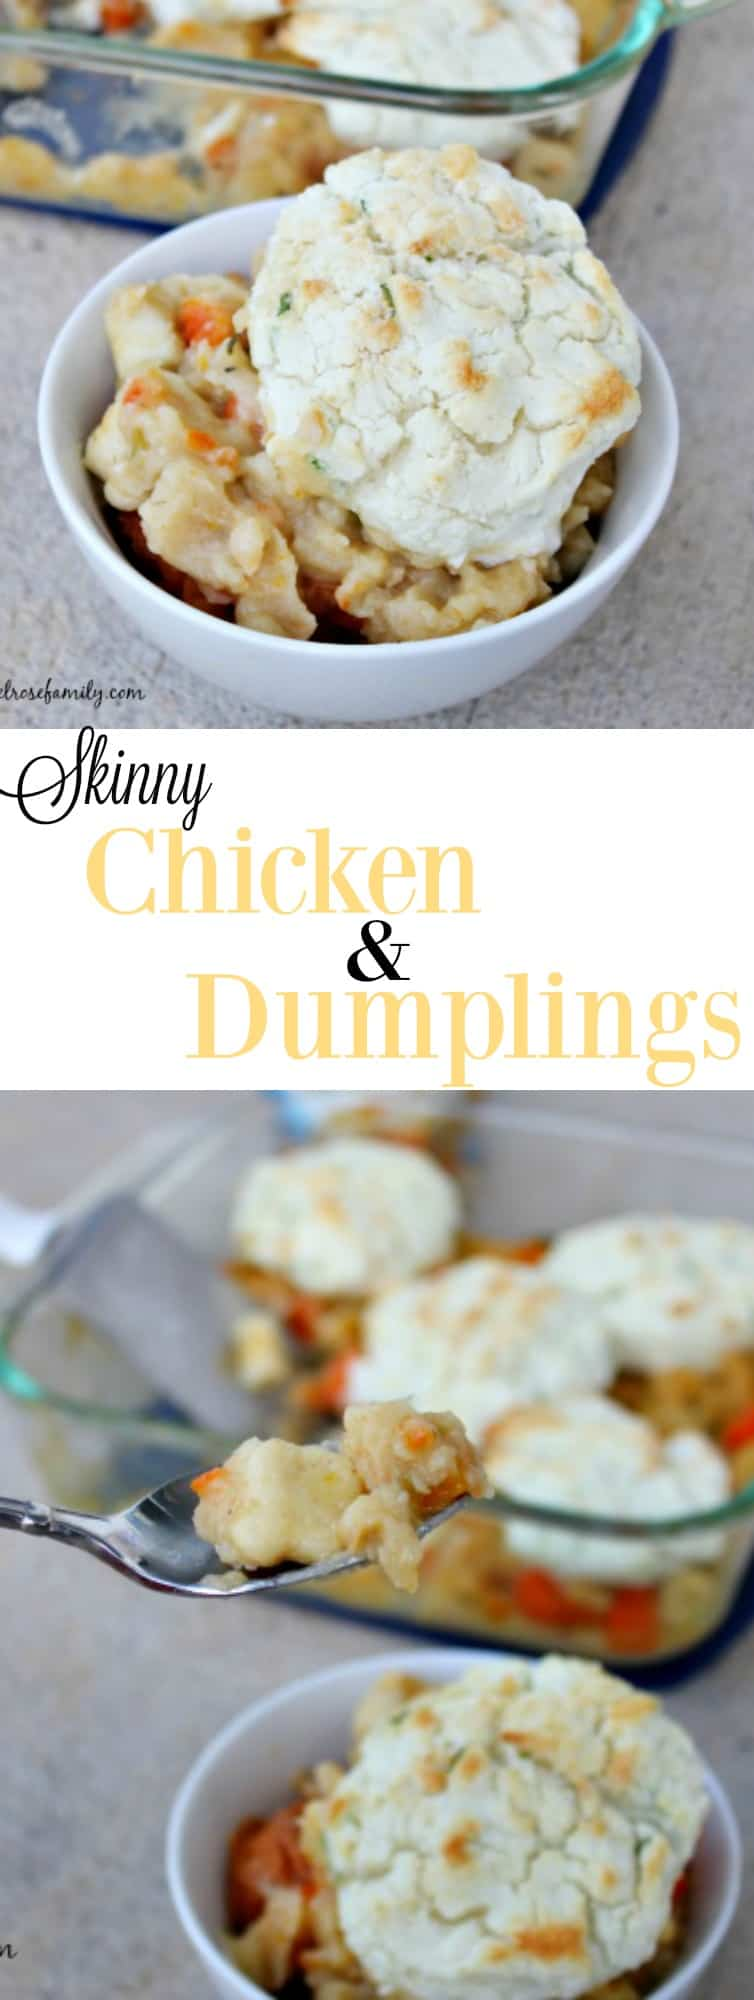 Skinny Chicken & Dumplings are the perfect comfort food that come together in a snap.